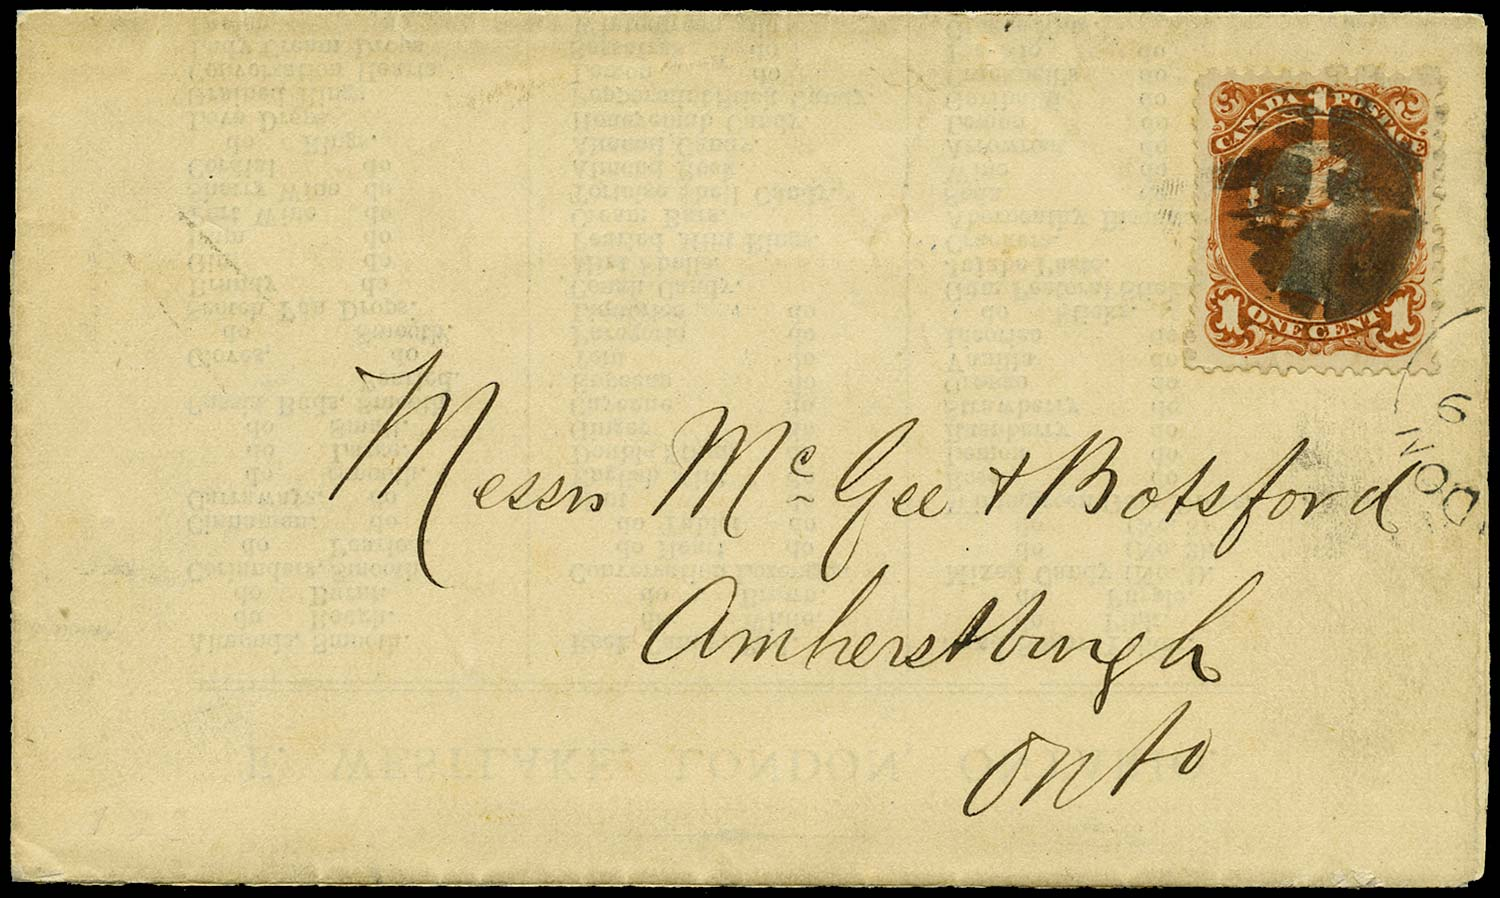 CANADA 1868  SG55 Cover advertising circular to Amherstburg at 1c rate